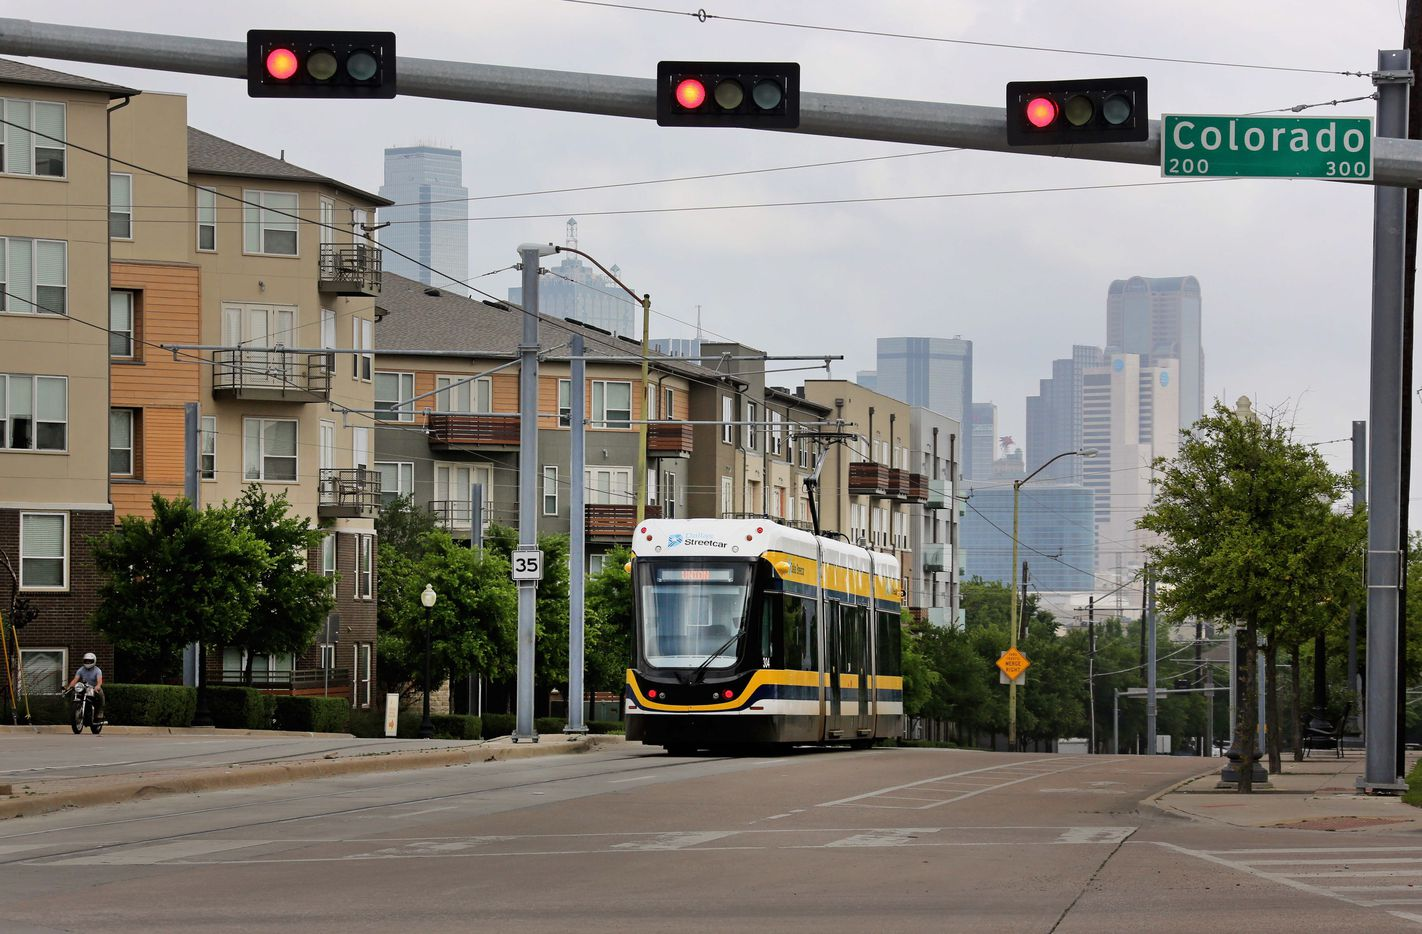 The Dallas streetcar approaches the intersection of Zang and Colorado as it ambles along its route in Oak Cliff just past the Oakenwald stop, photographed on Thursday, April 13, 2017.